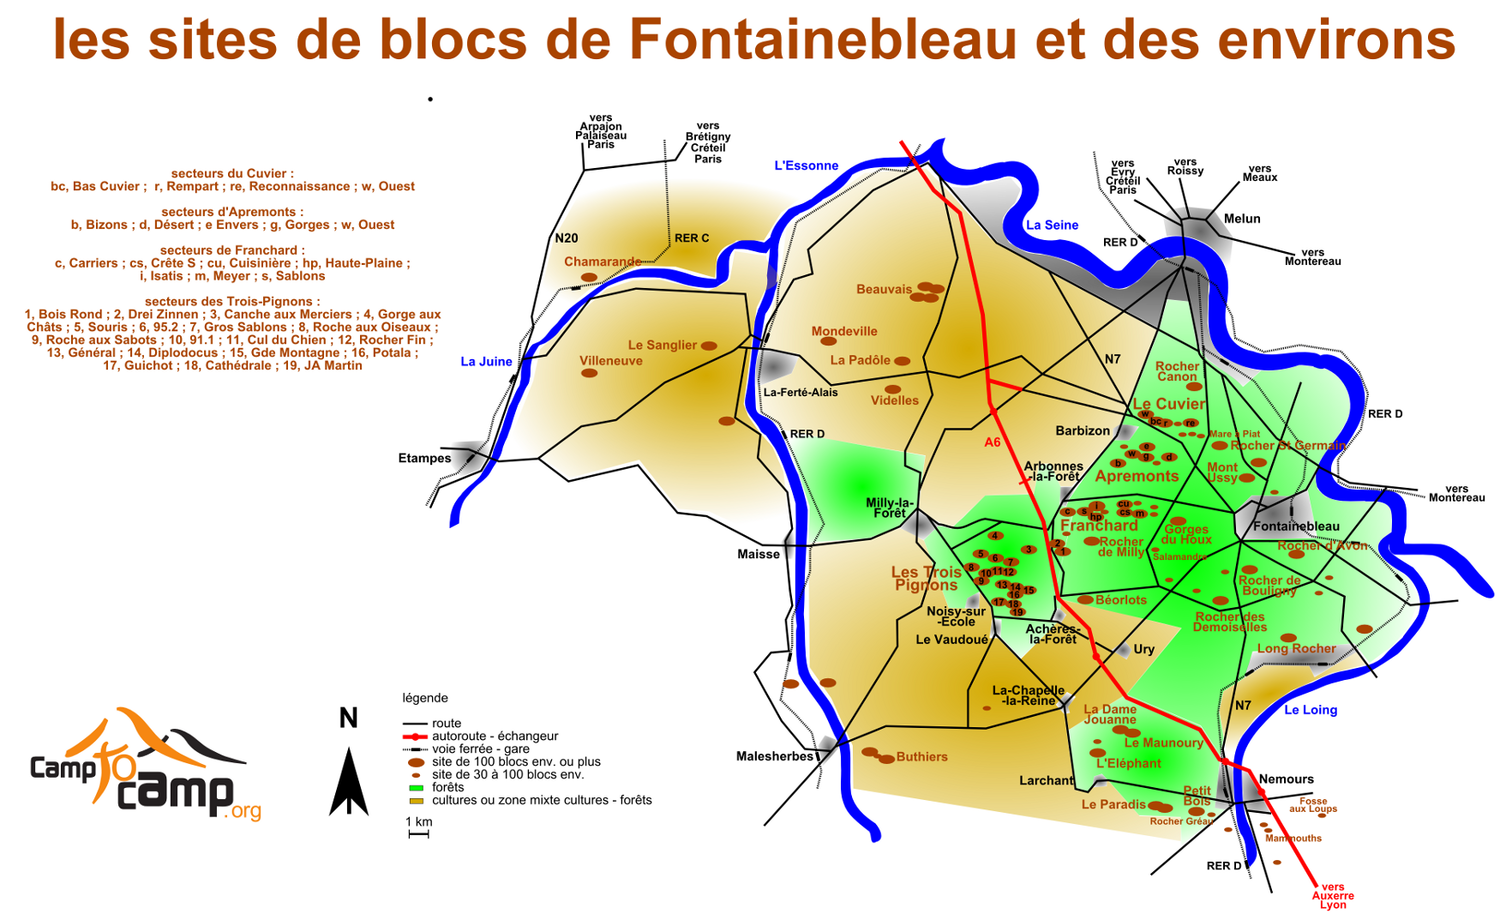 Principaux sites de blocs de Fontainebleau (version 12/09/09)